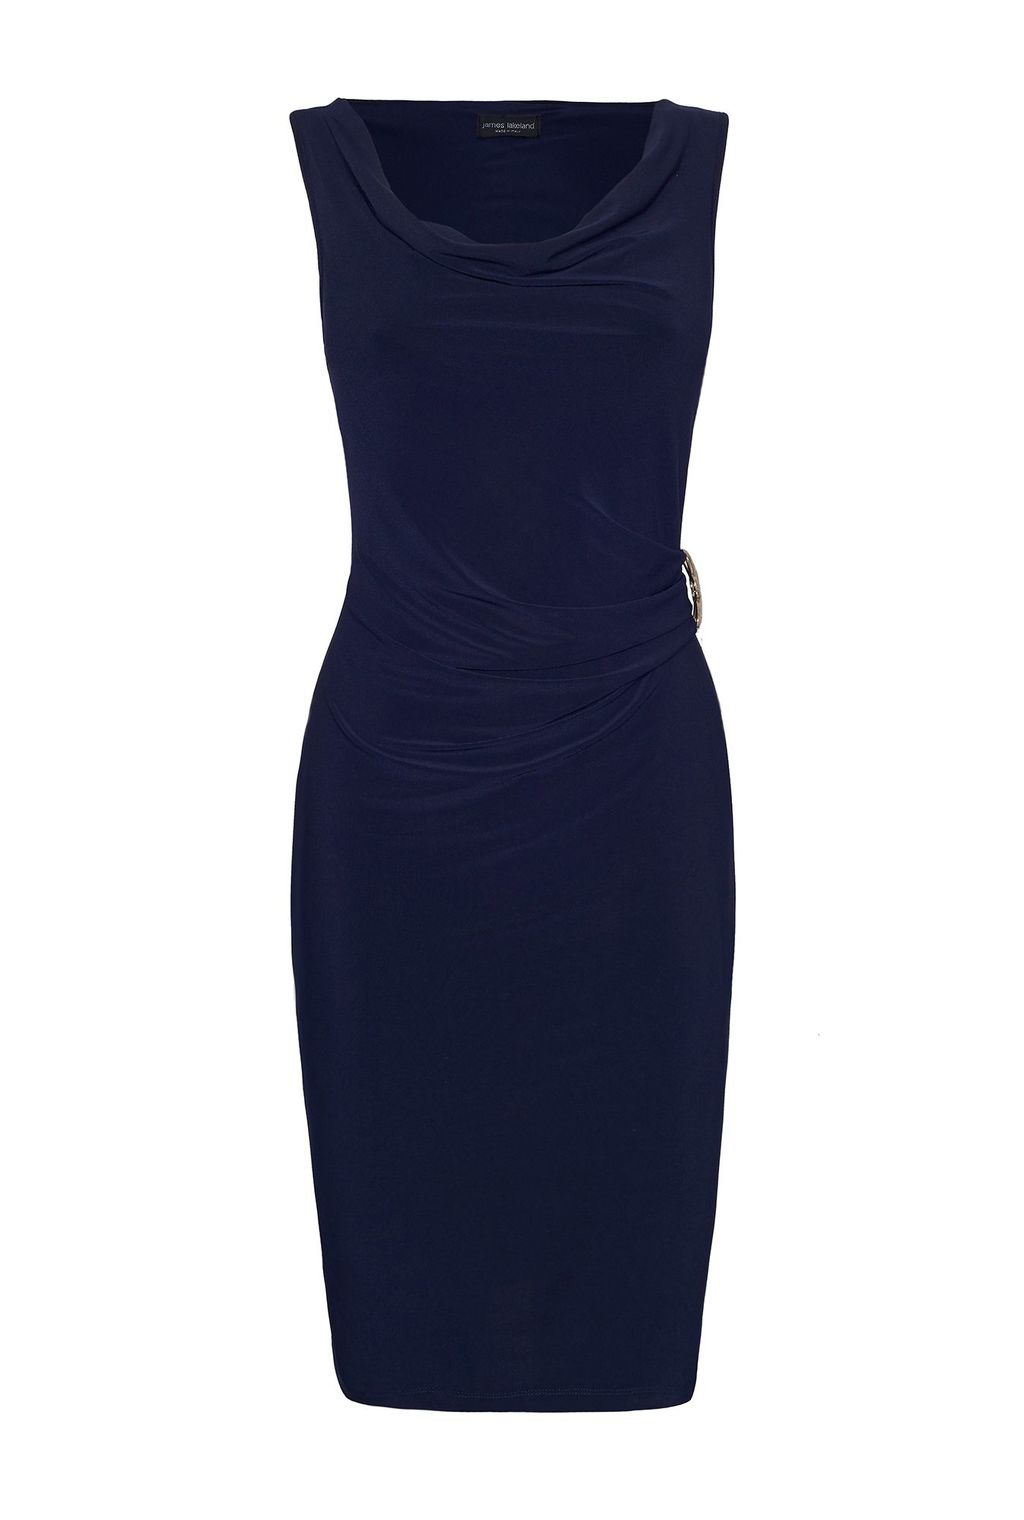 Sleeveless Side Ruched Dress, Navy - style: shift; neckline: cowl/draped neck; pattern: plain; sleeve style: sleeveless; waist detail: flattering waist detail; predominant colour: navy; occasions: evening, occasion; length: just above the knee; fit: body skimming; fibres: polyester/polyamide - stretch; sleeve length: sleeveless; texture group: jersey - clingy; pattern type: fabric; season: s/s 2016; wardrobe: event